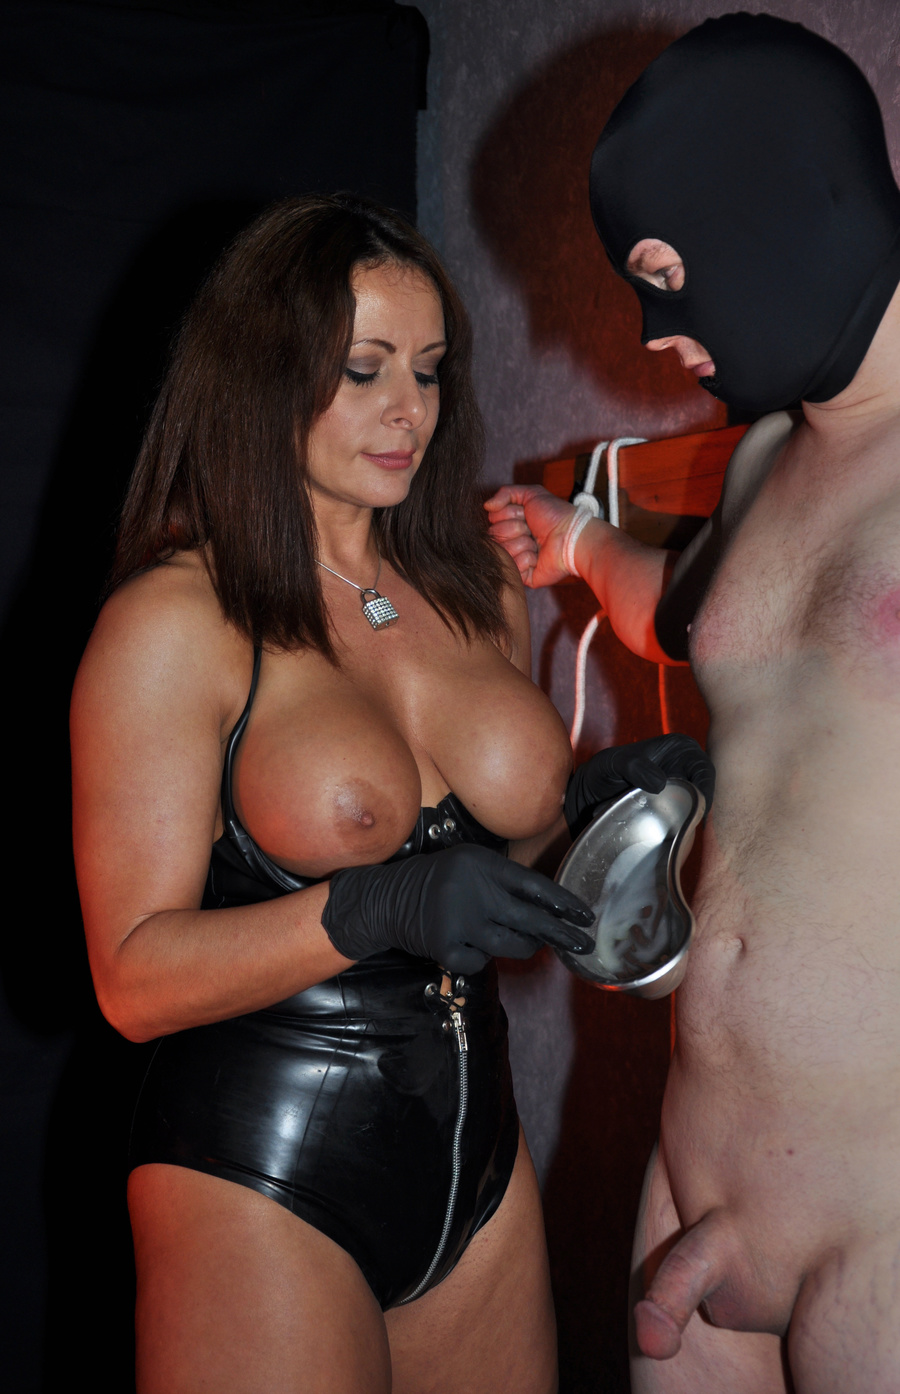 black shemale mistress ... Gorgeous mistress in a black corset and - XXX Dessert - Picture 11 ...